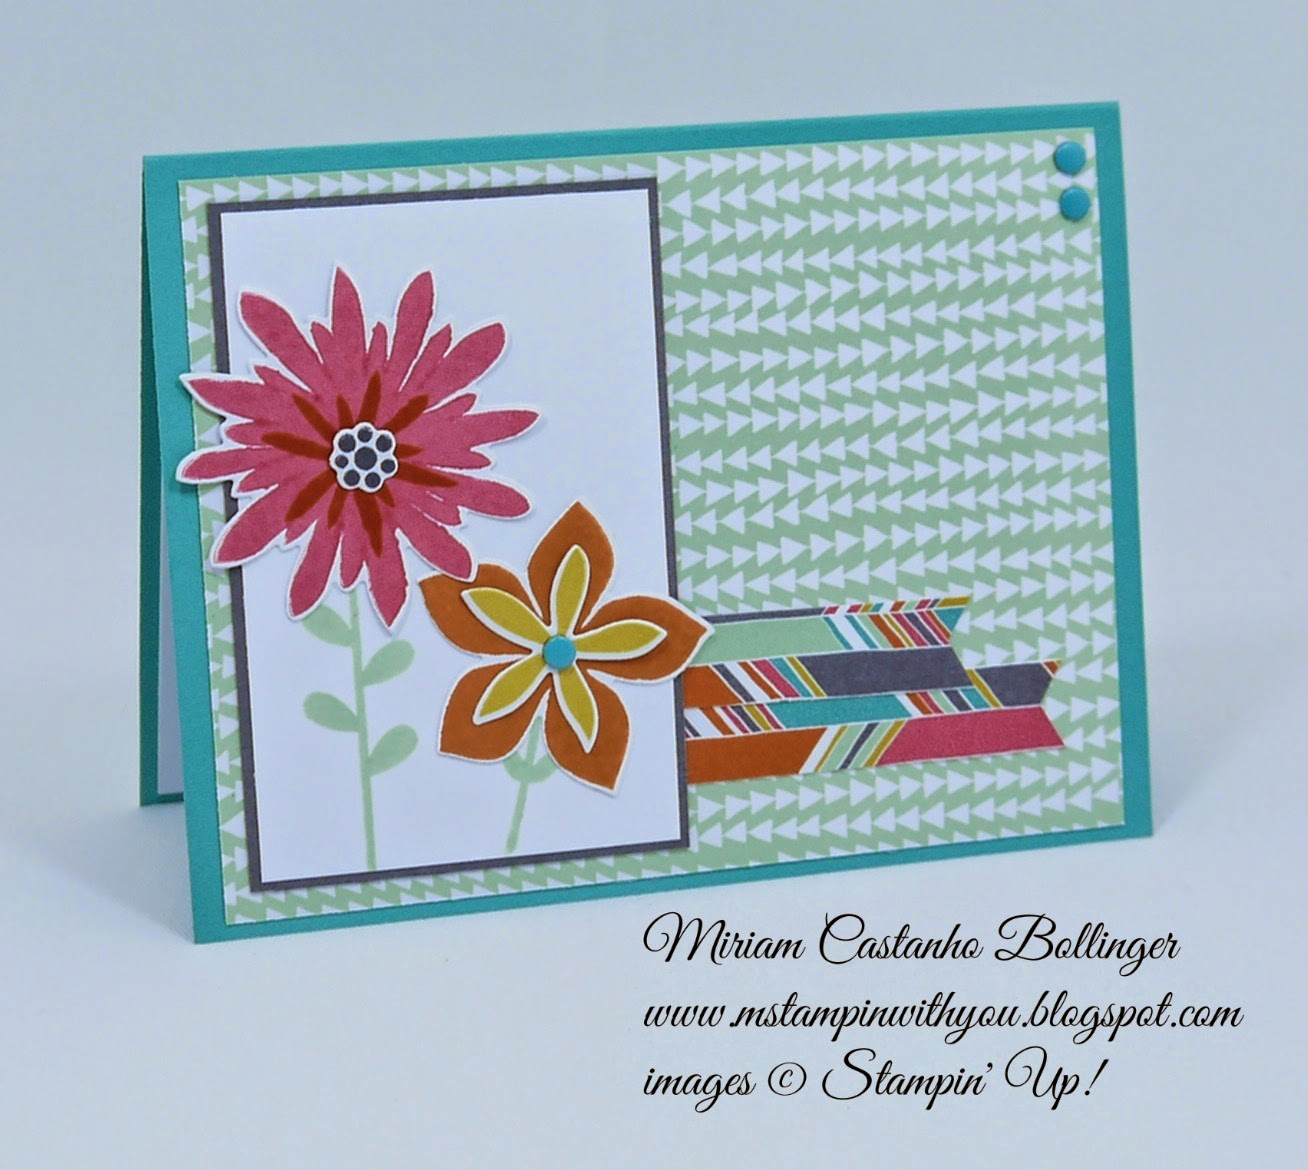 DSC 094, Miriam Castanho Bollinger, #mstampinwithyou, stampin up, demonstrator, dsc, flower patch, confetti celebration dsp, flower fair, su